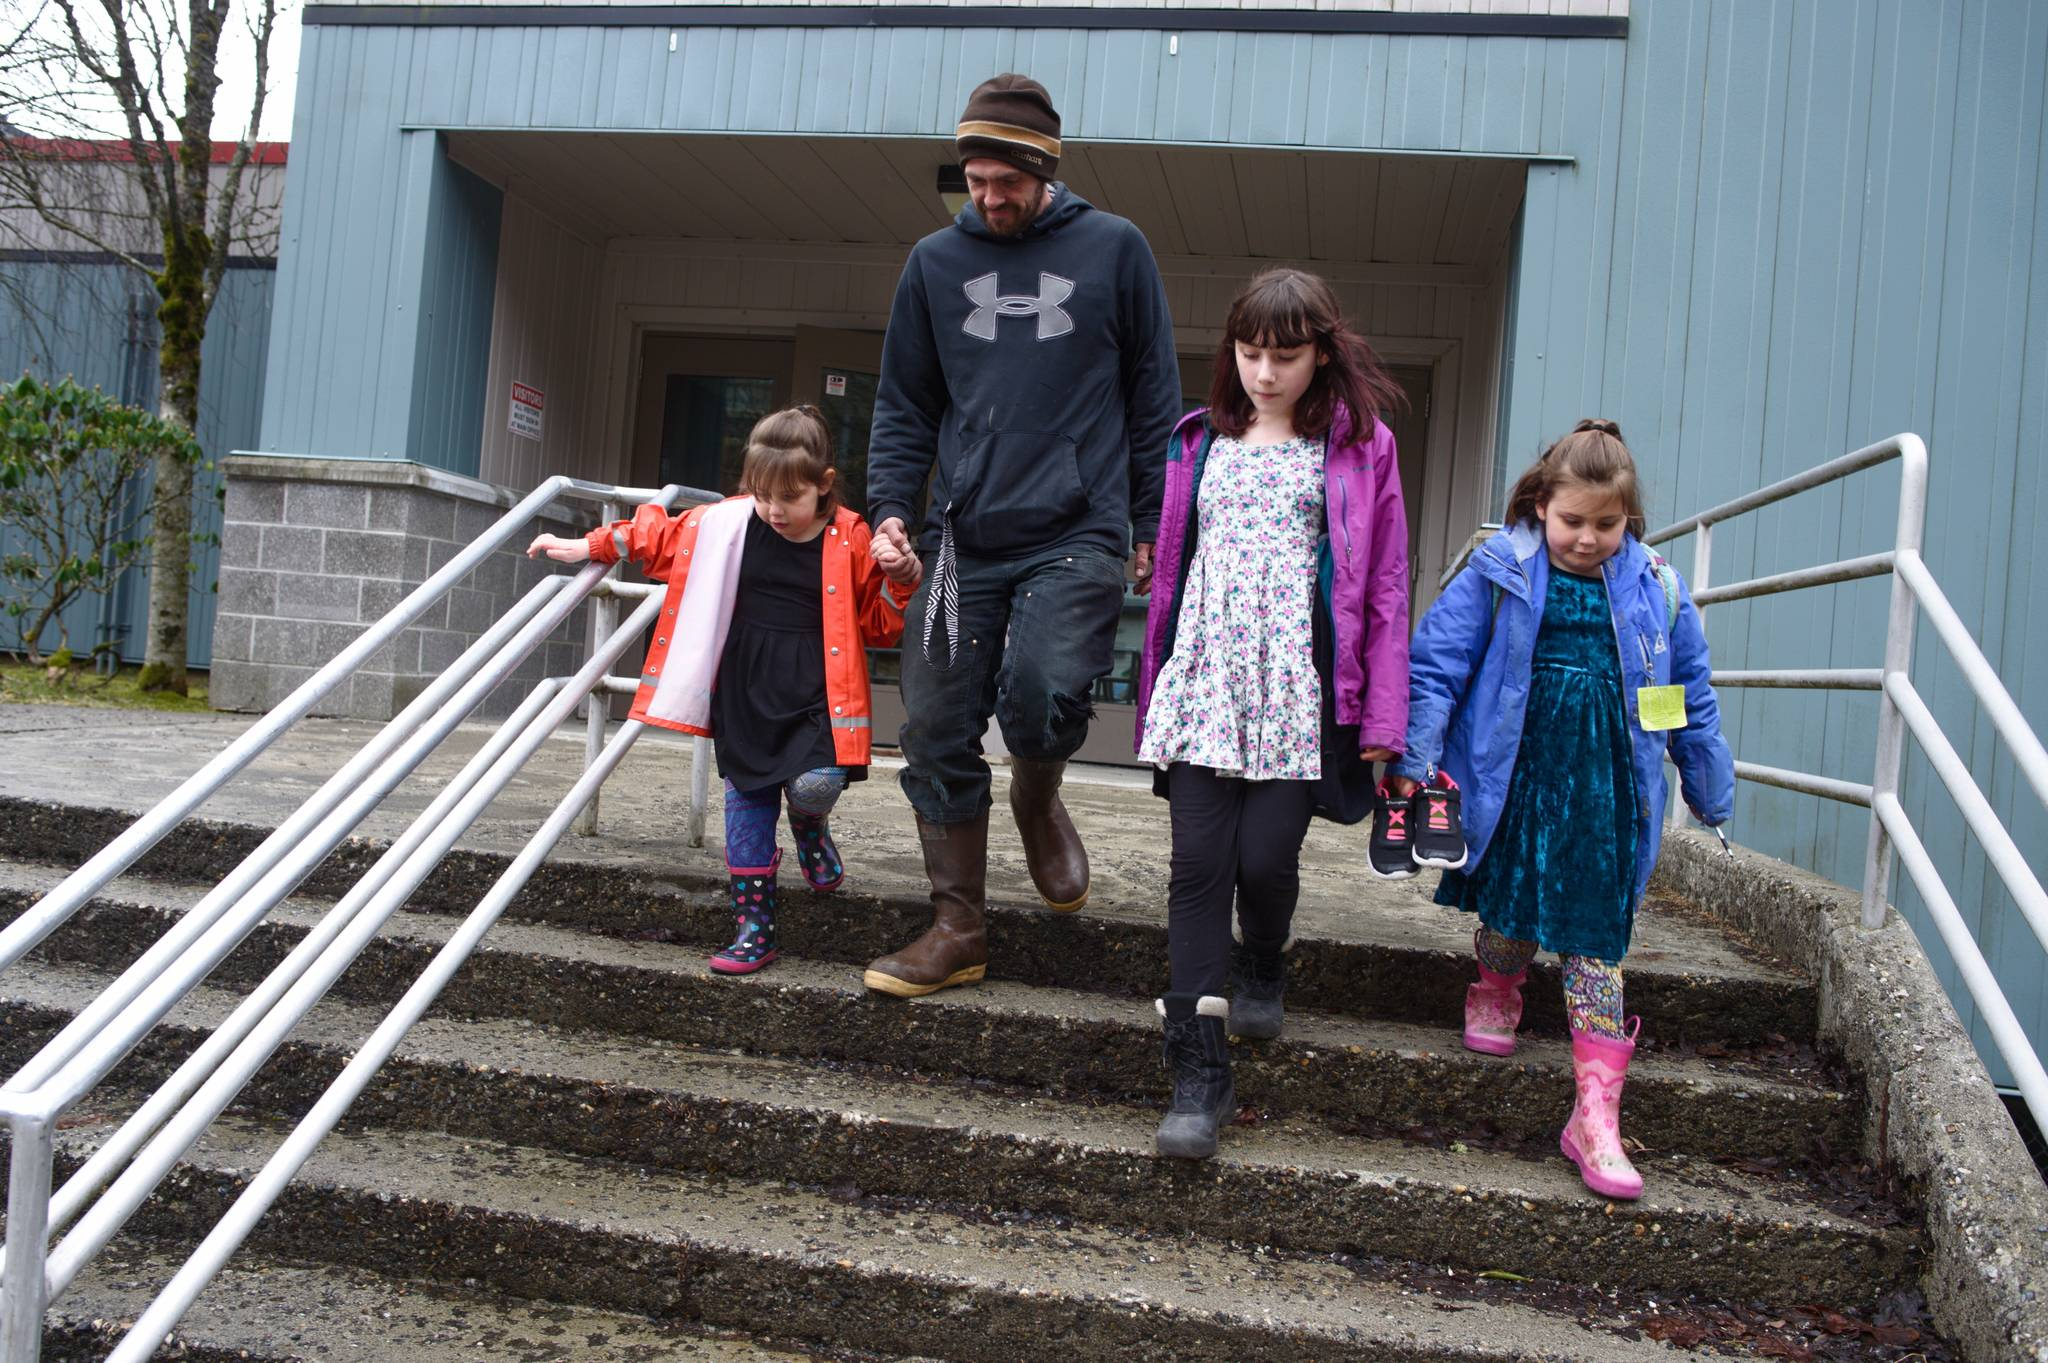 John Conklin picks up his children, Everlee, 5, left, Rhiana, 12, and Hazel, 7, from Juneau-Douglas High School: Yadaa.at Kalé after they were evacuated from the Marie Drake building on Friday, April 5, 2019. Flooding in a basement boiler room spread diesel fumes throughout the building. (Michael Penn | Juneau Empire)